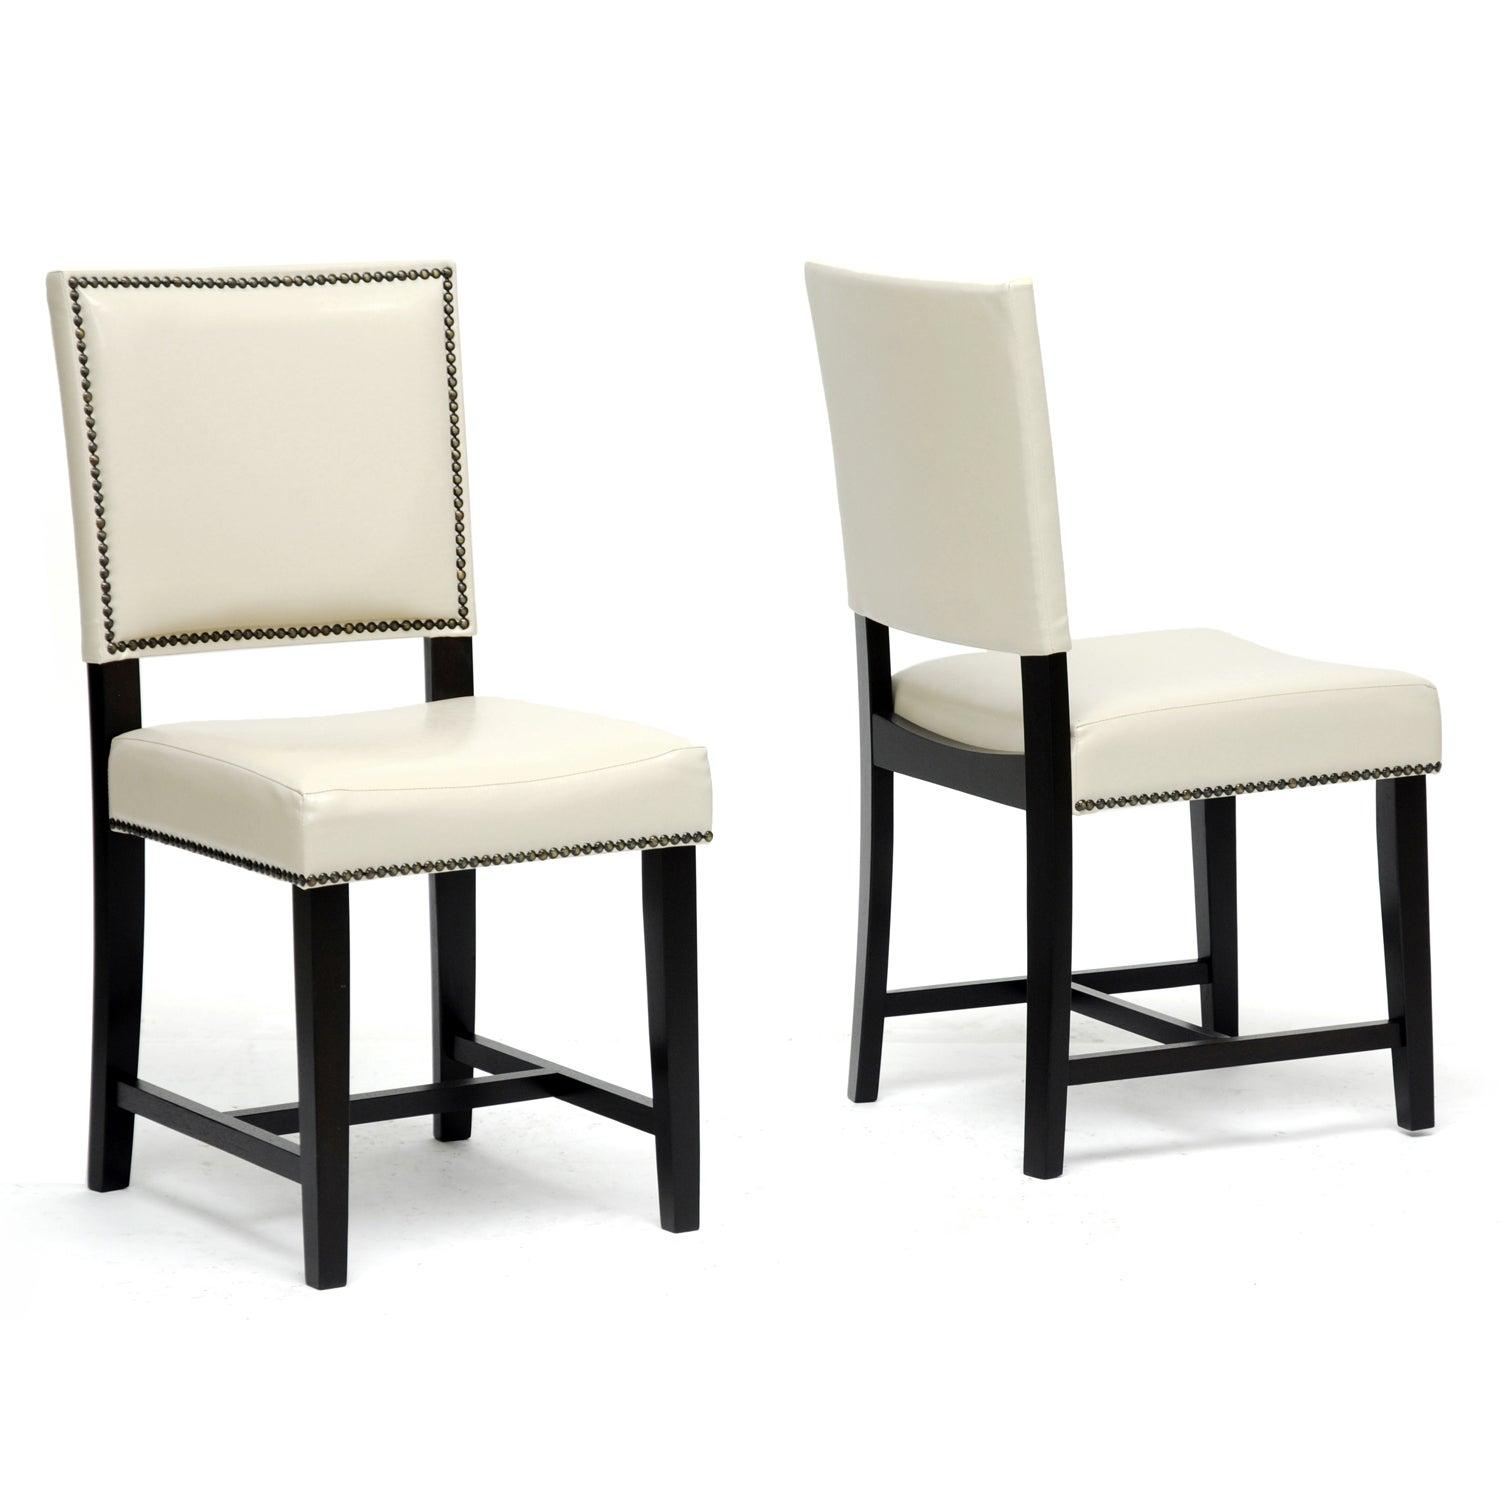 Nottingham Cream Faux Leather Modern Dining Chairs (Set of 2)